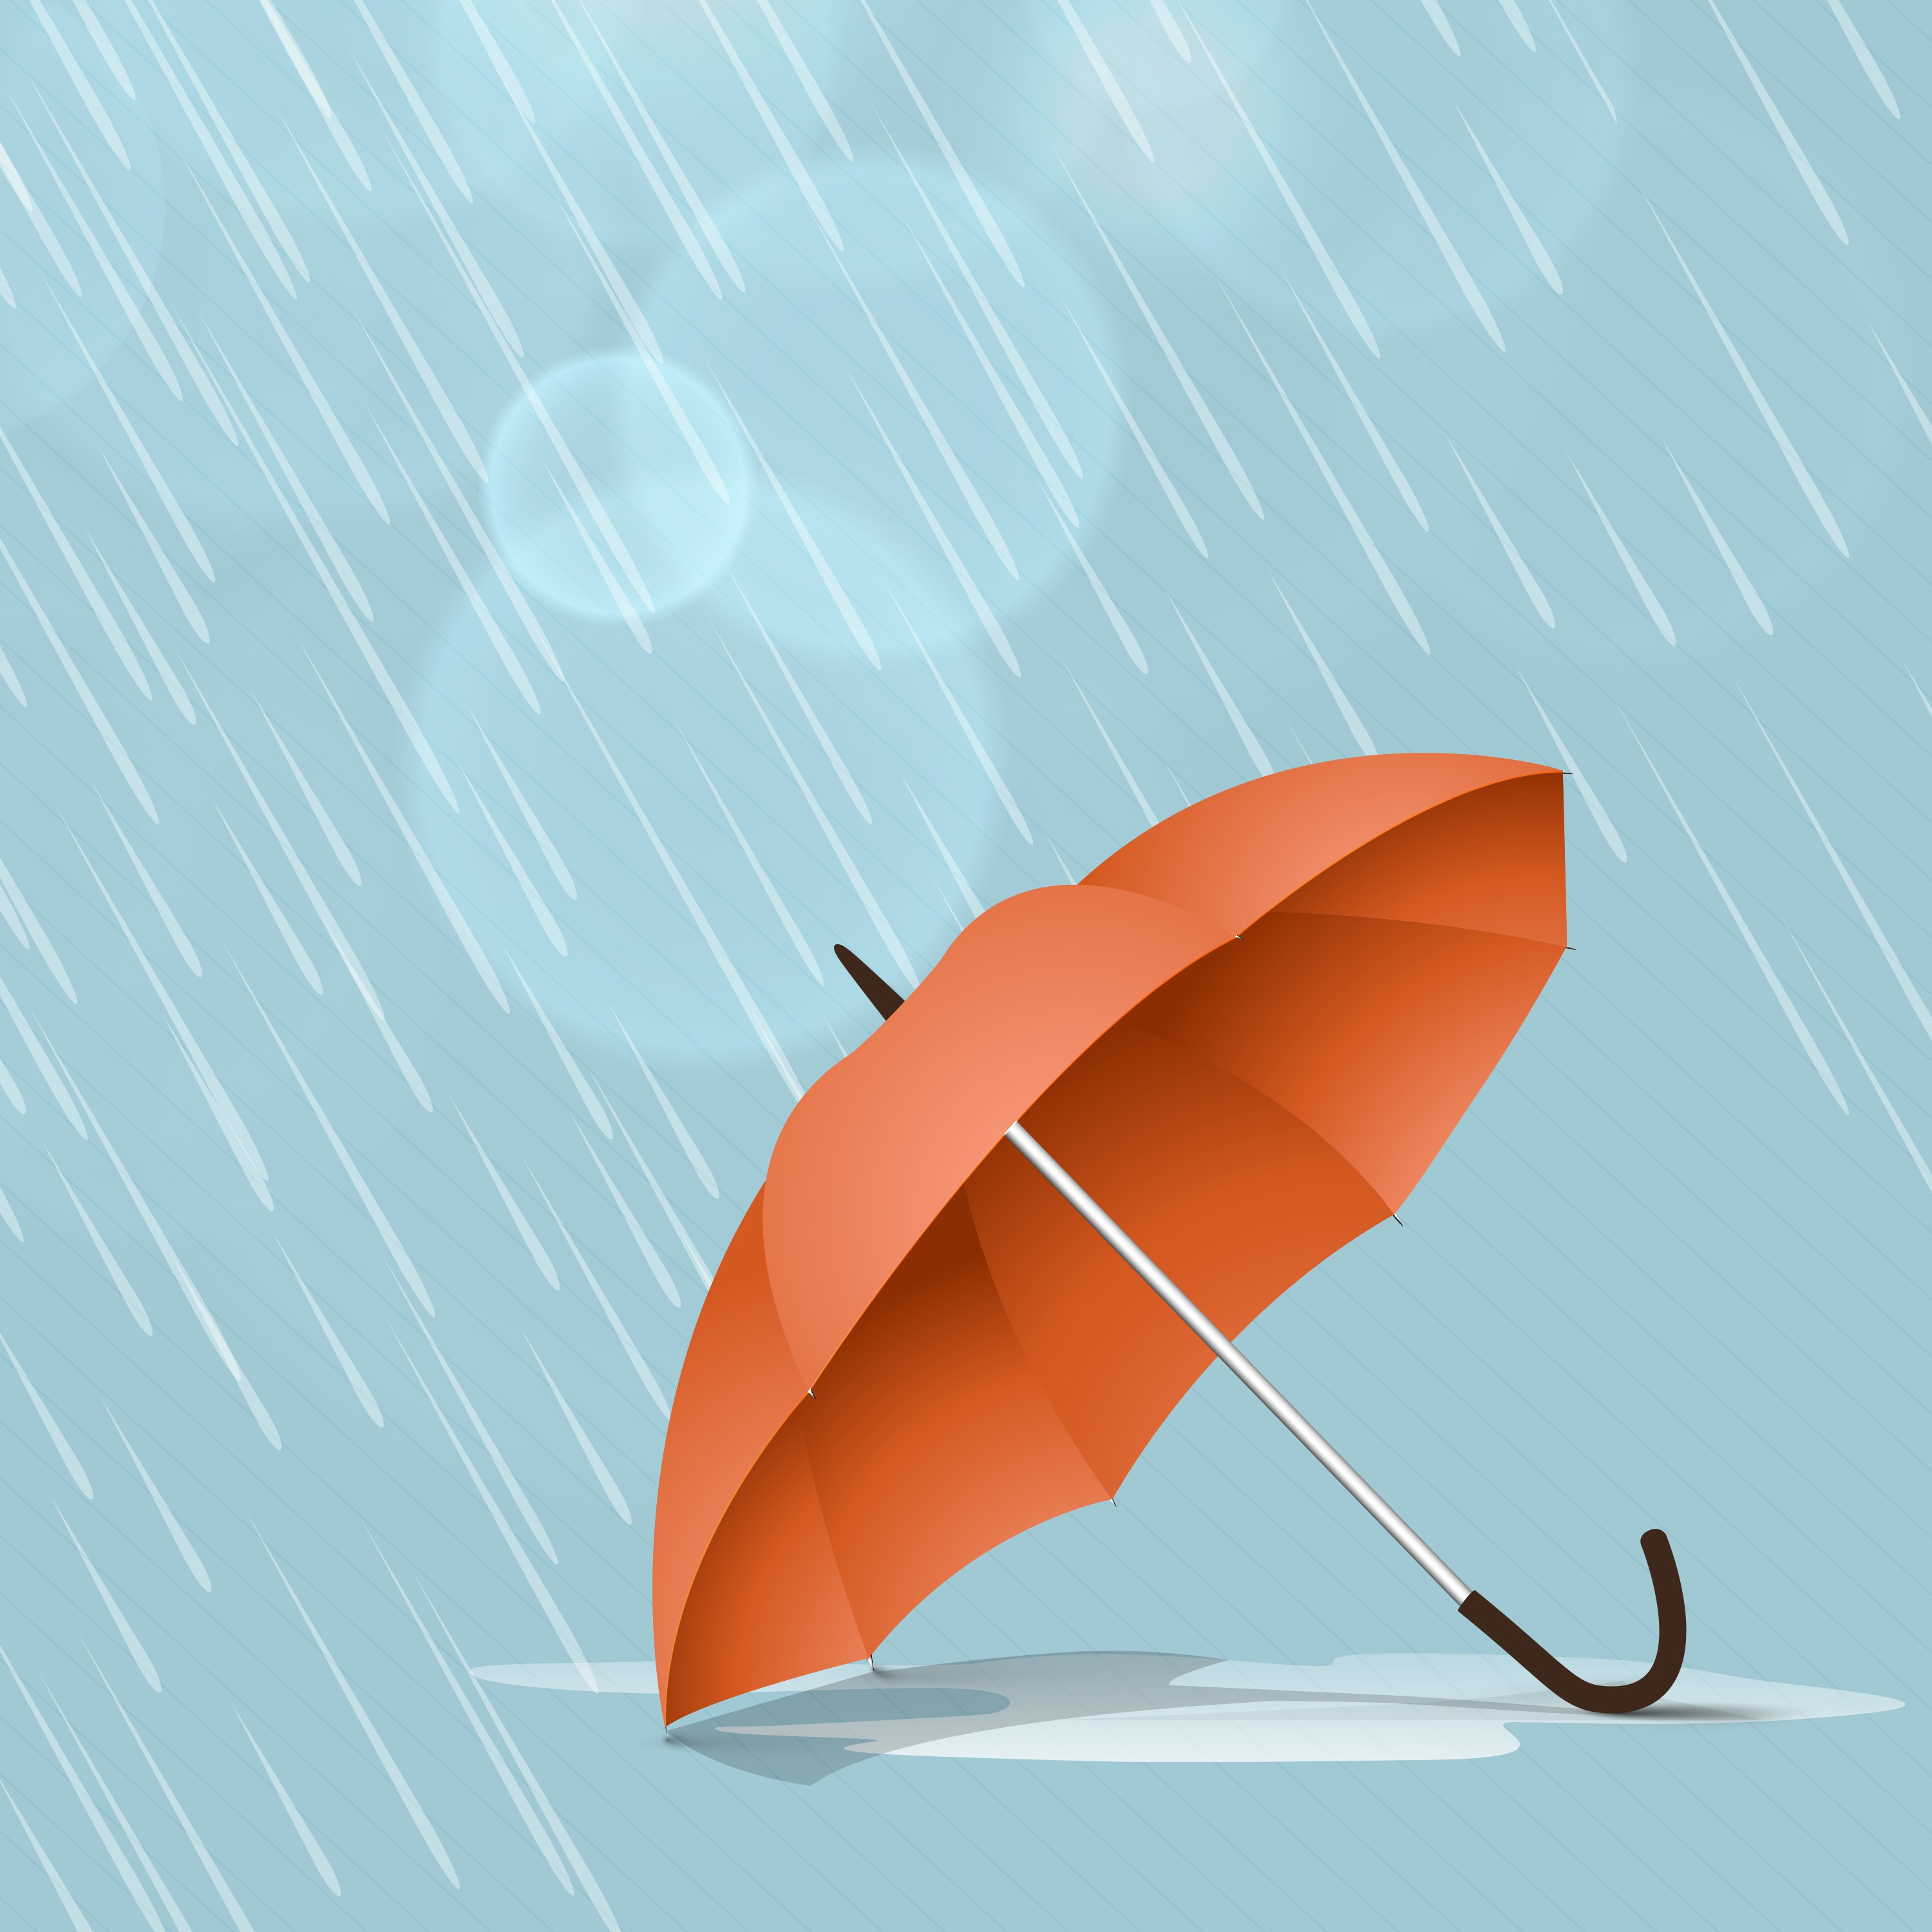 Bad Weather Hard on Your Home? We've Got You Covered.